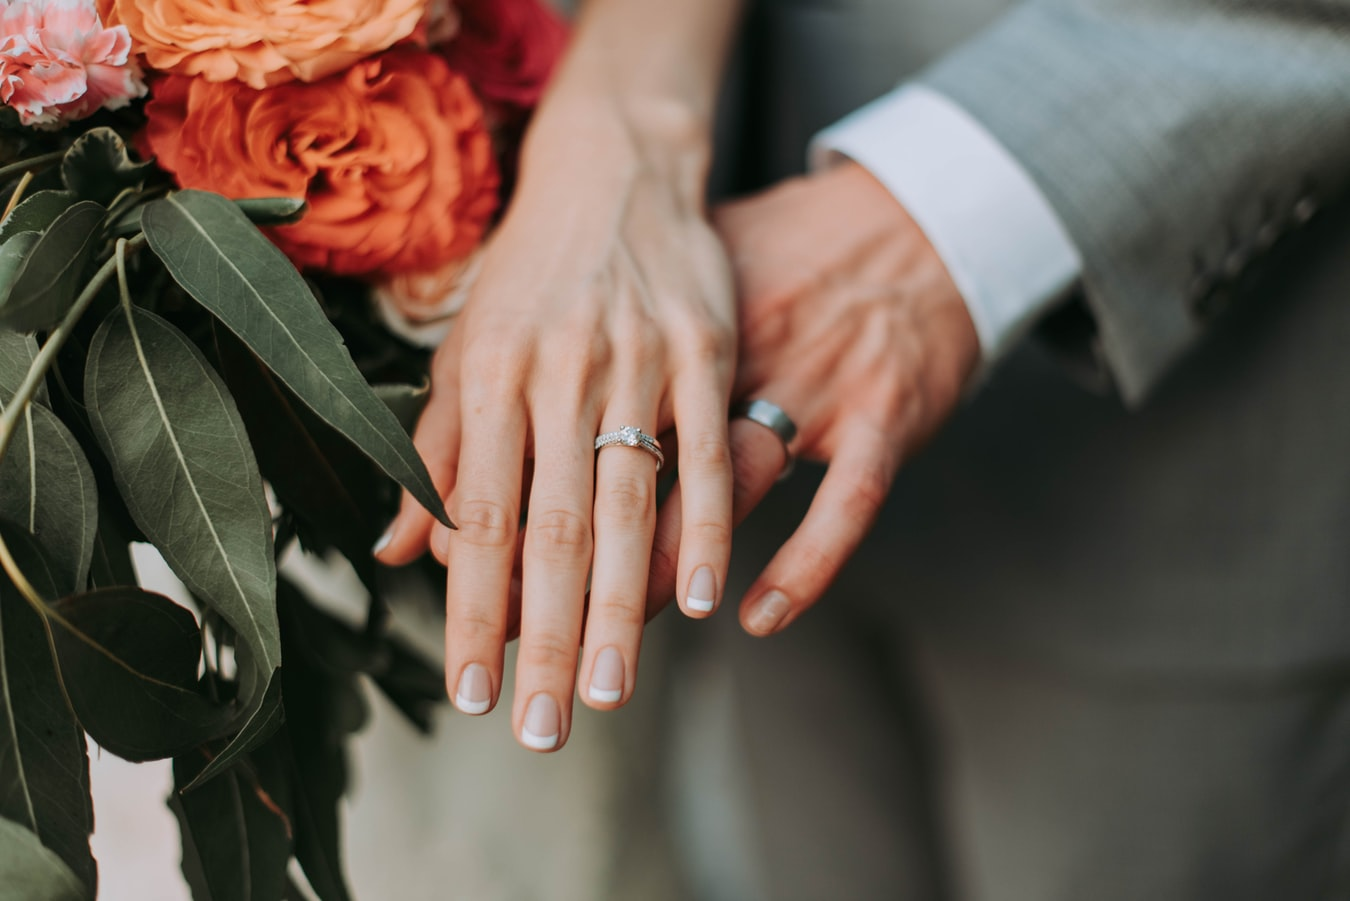 Tips on How to Win Over the Parents of Your Future Bride